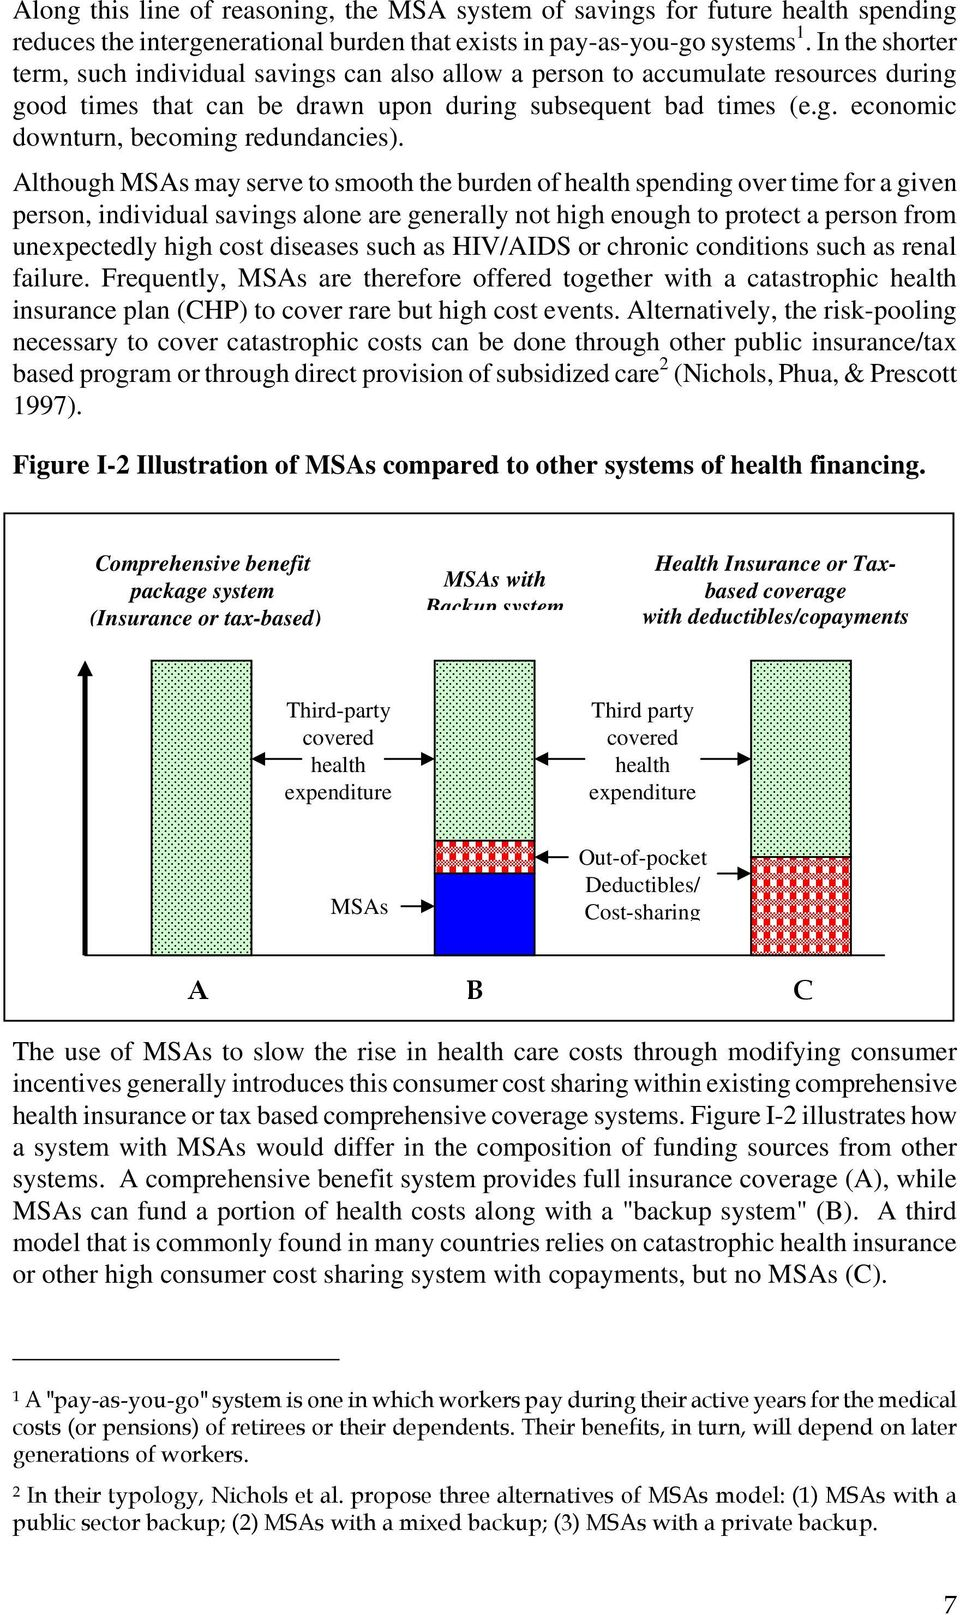 Although MSAs may serve to smooth the burden of health spending over time for a given person, individual savings alone are generally not high enough to protect a person from unexpectedly high cost